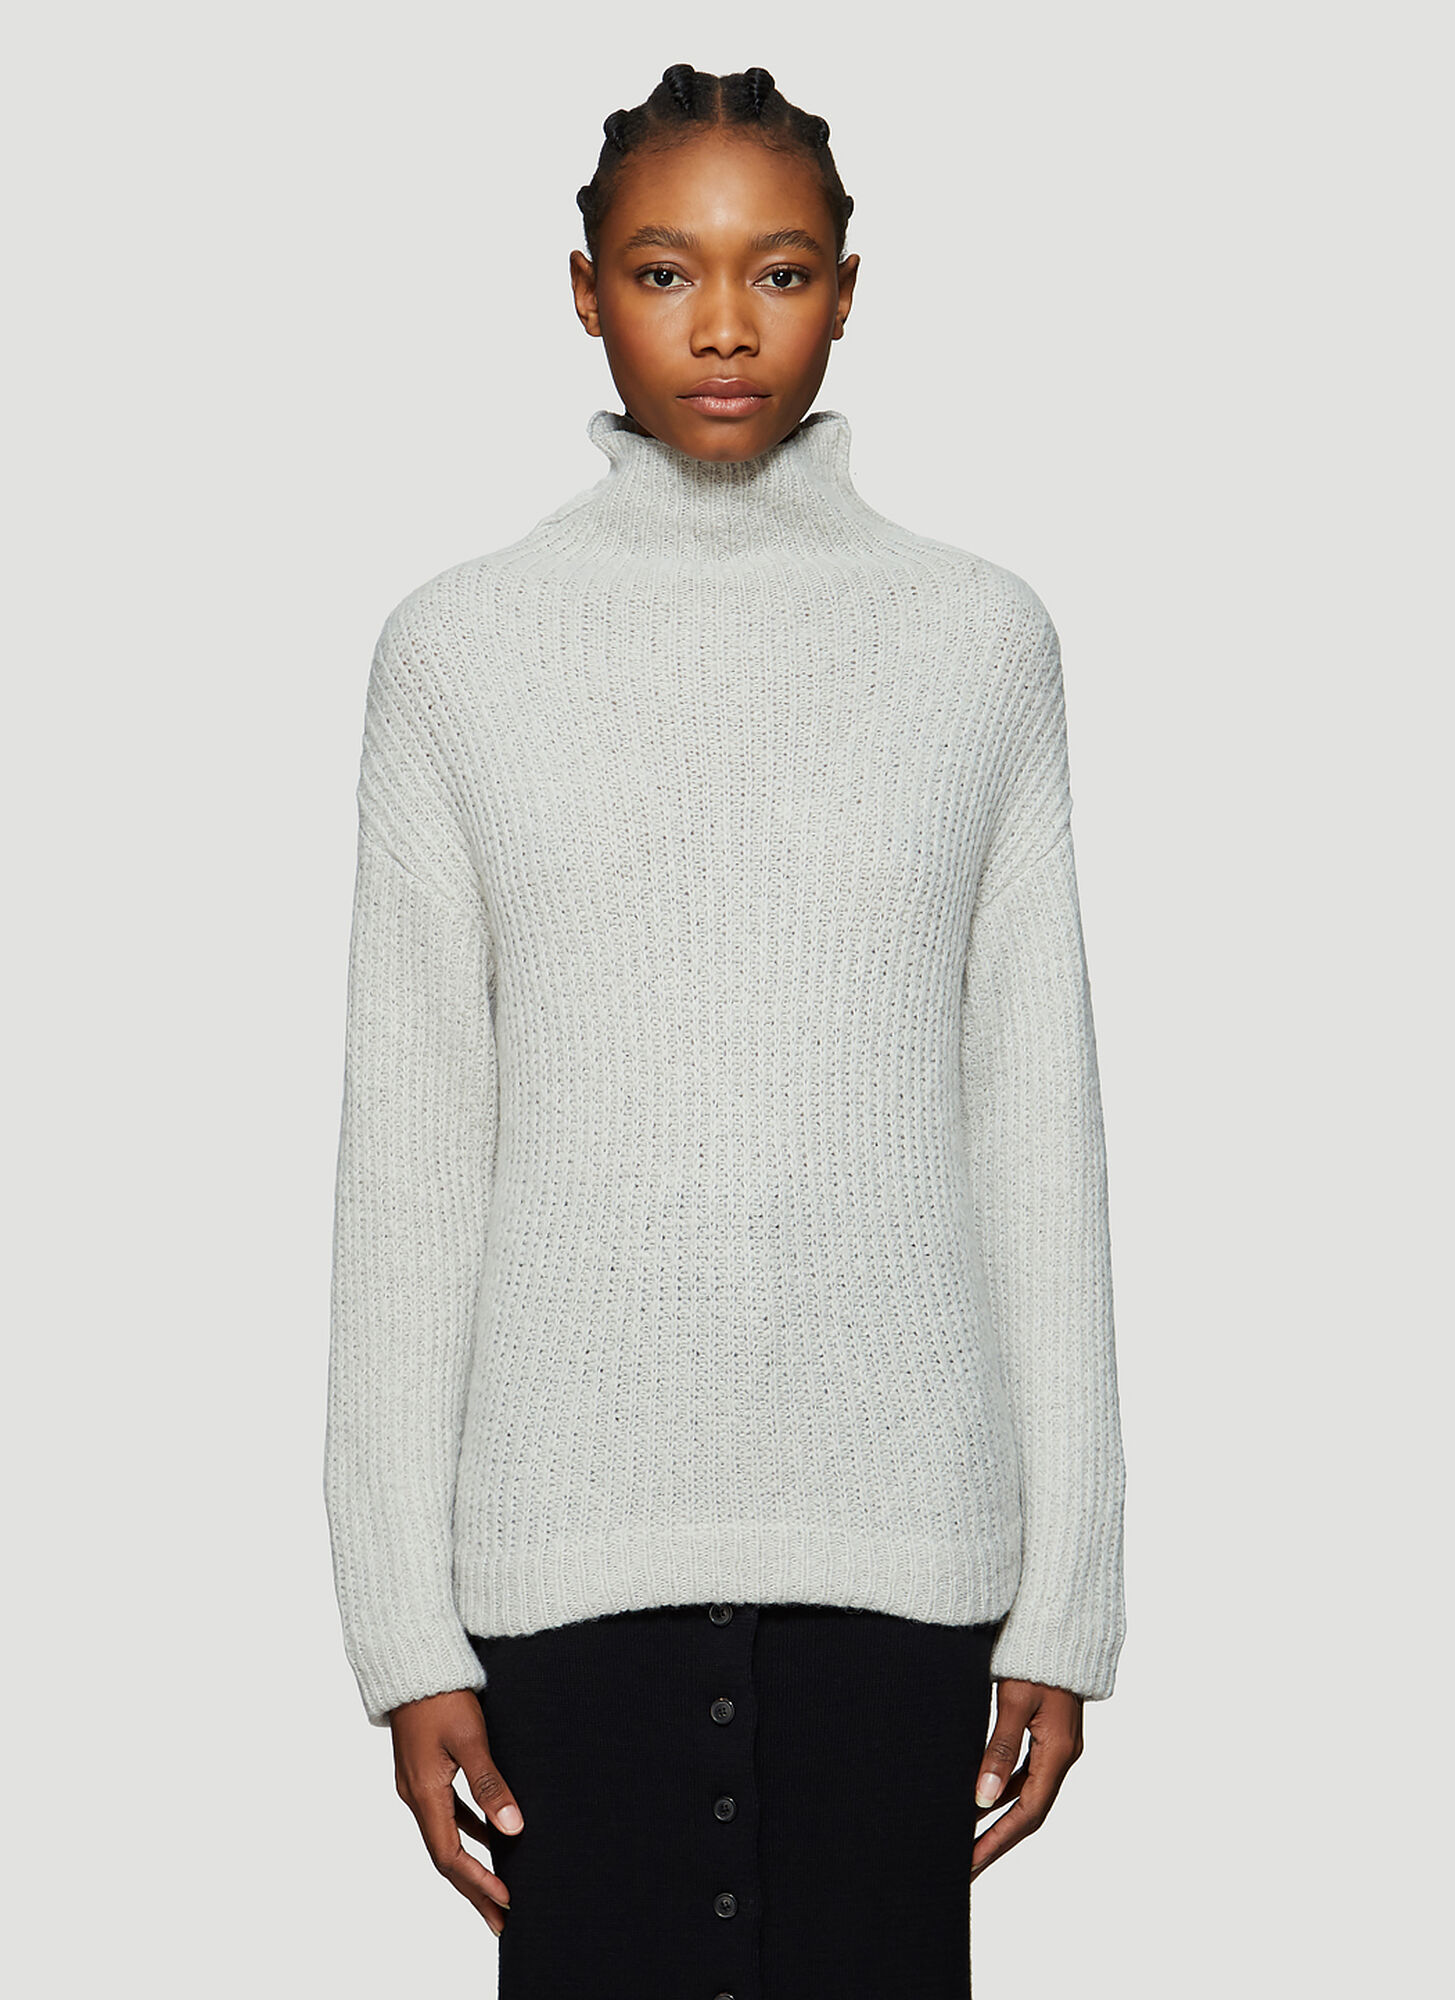 Our Legacy Turtleneck Knitted Sweater in Grey